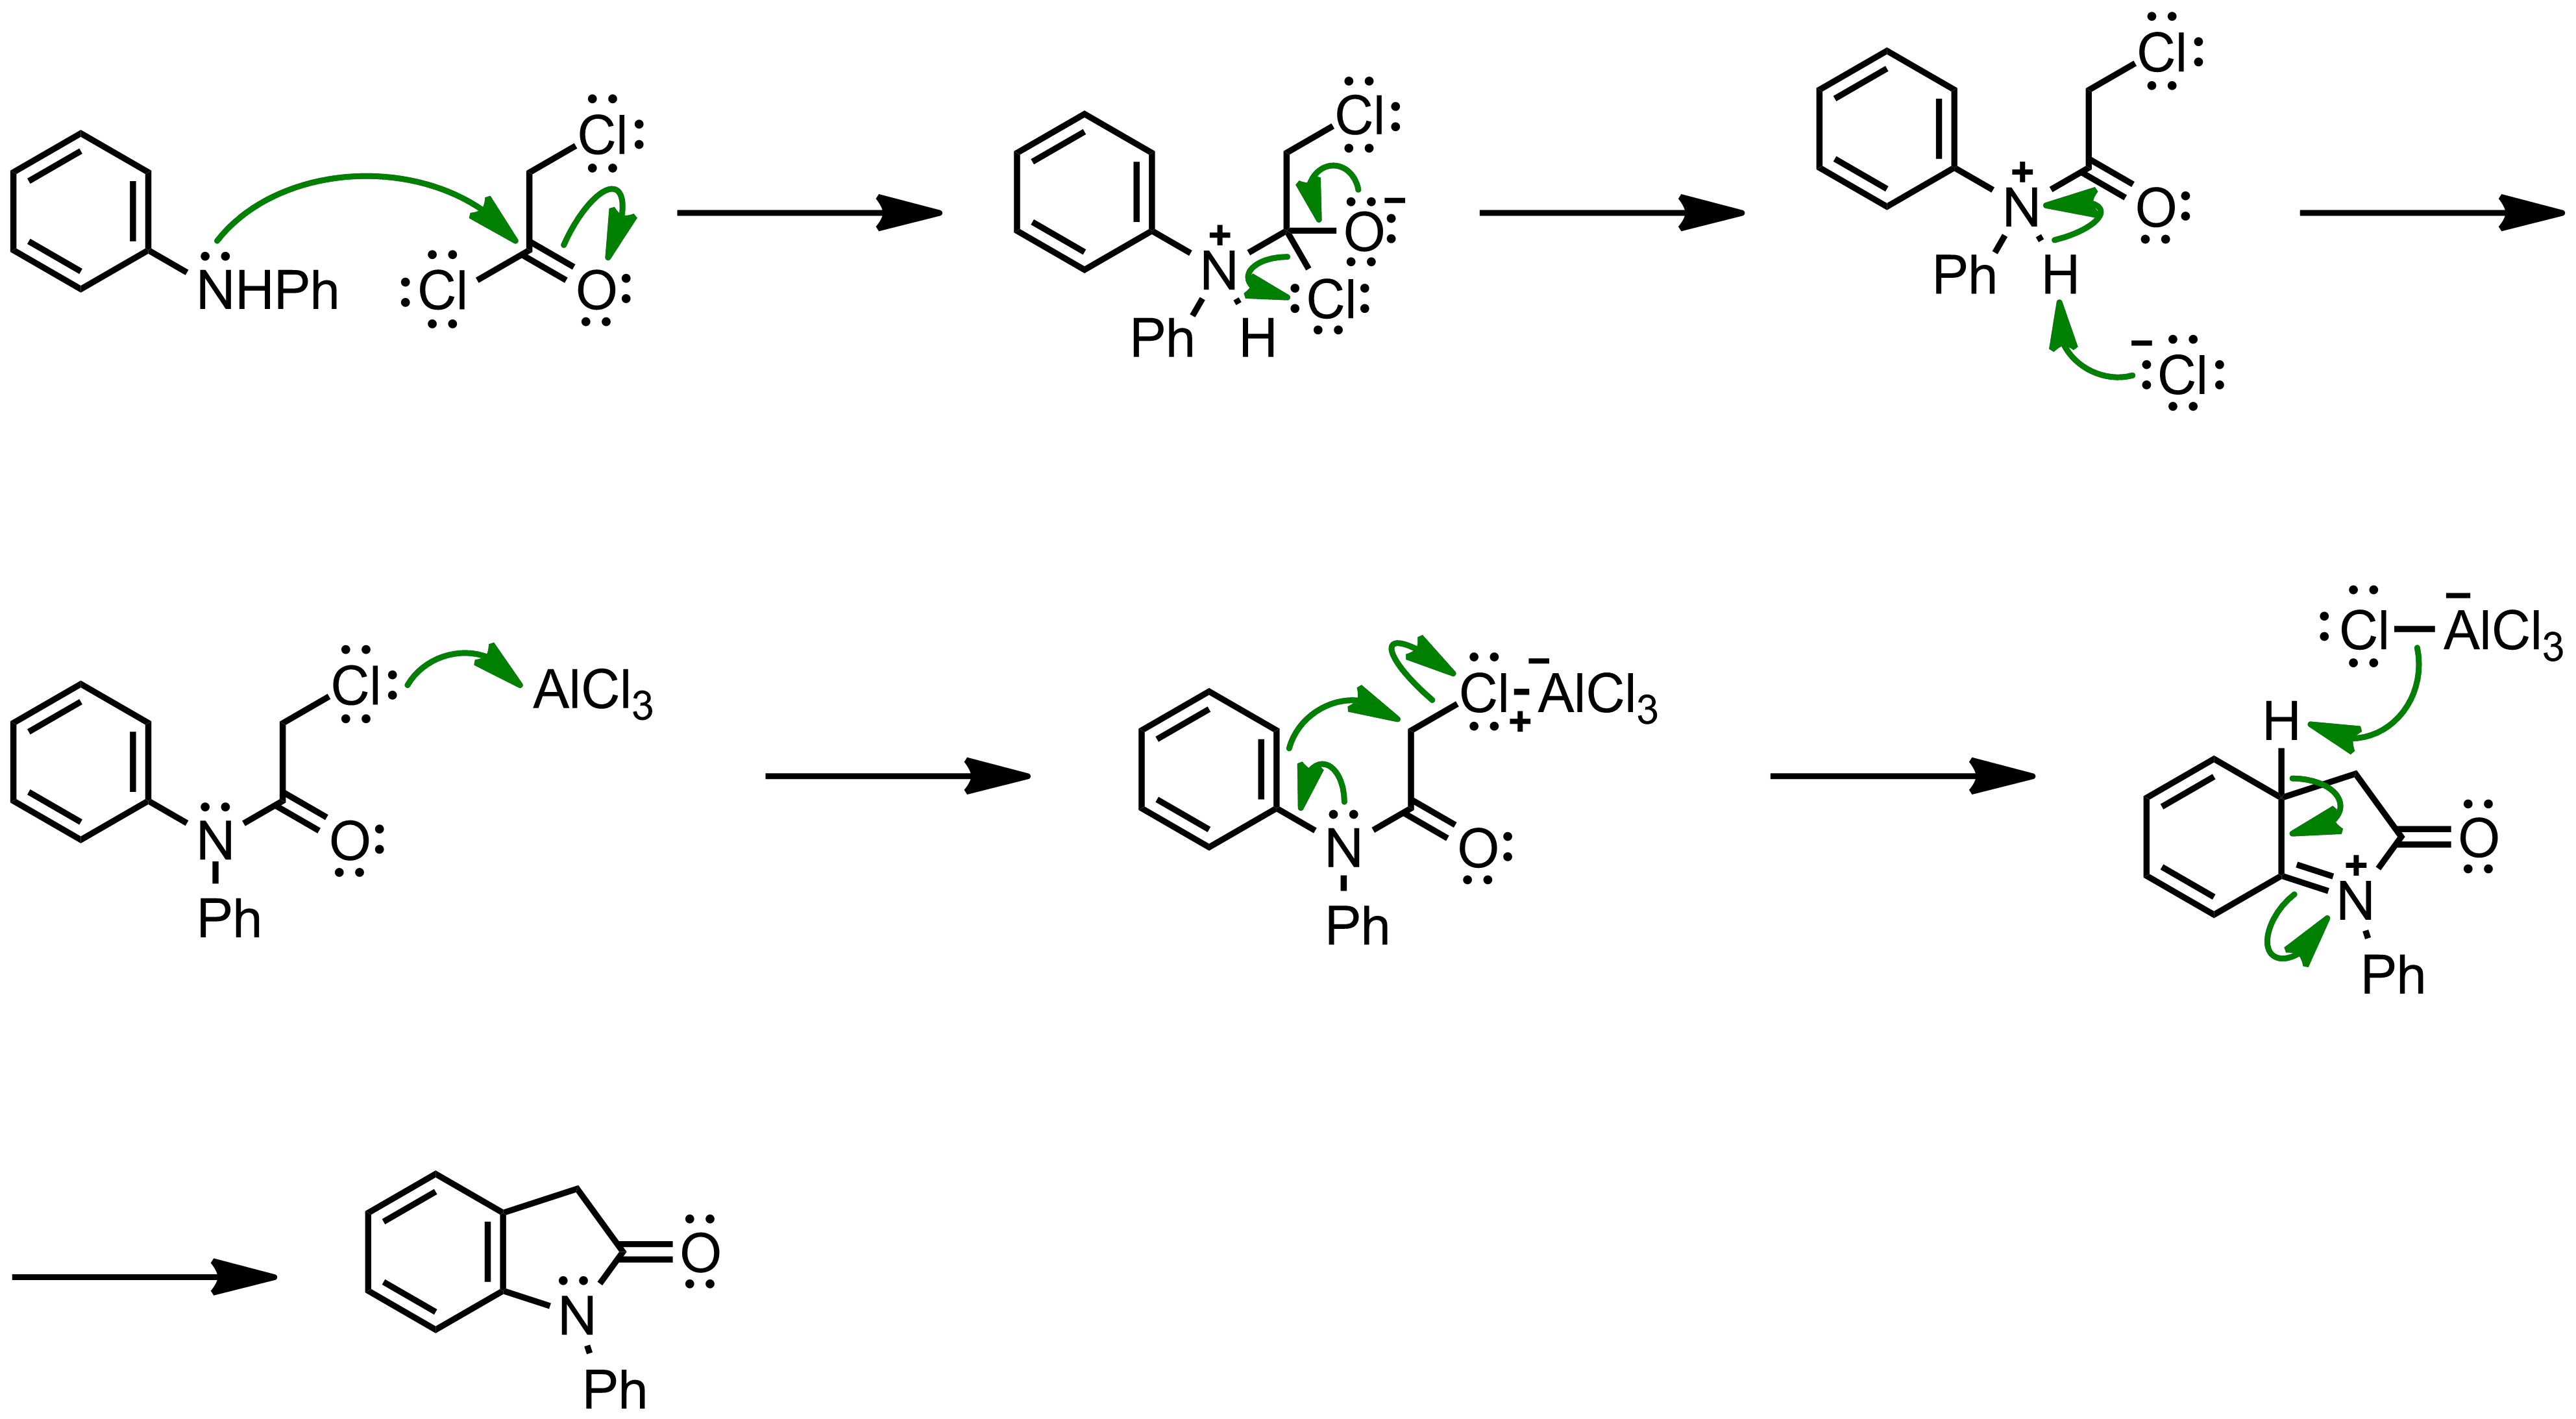 Mechanism of the Stollé Synthesis